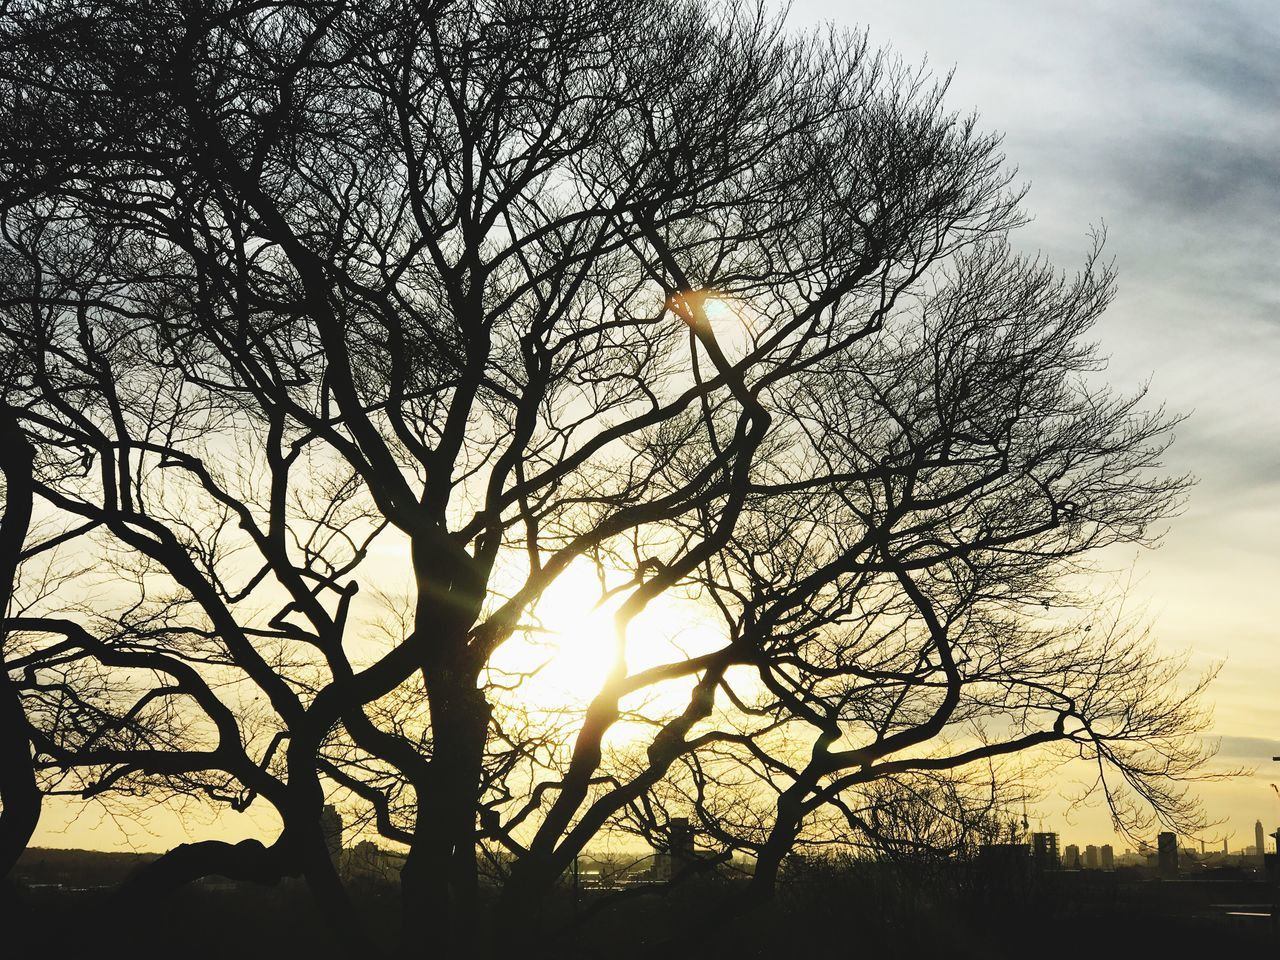 Tree Nature Sunset Sky Branch Beauty In Nature Sun Bare Tree Sunlight Tranquility No People Growth Outdoors Silhouette Tranquil Scene Scenics Day Greenwich Park London The Week Of Eyeem Sony A6300